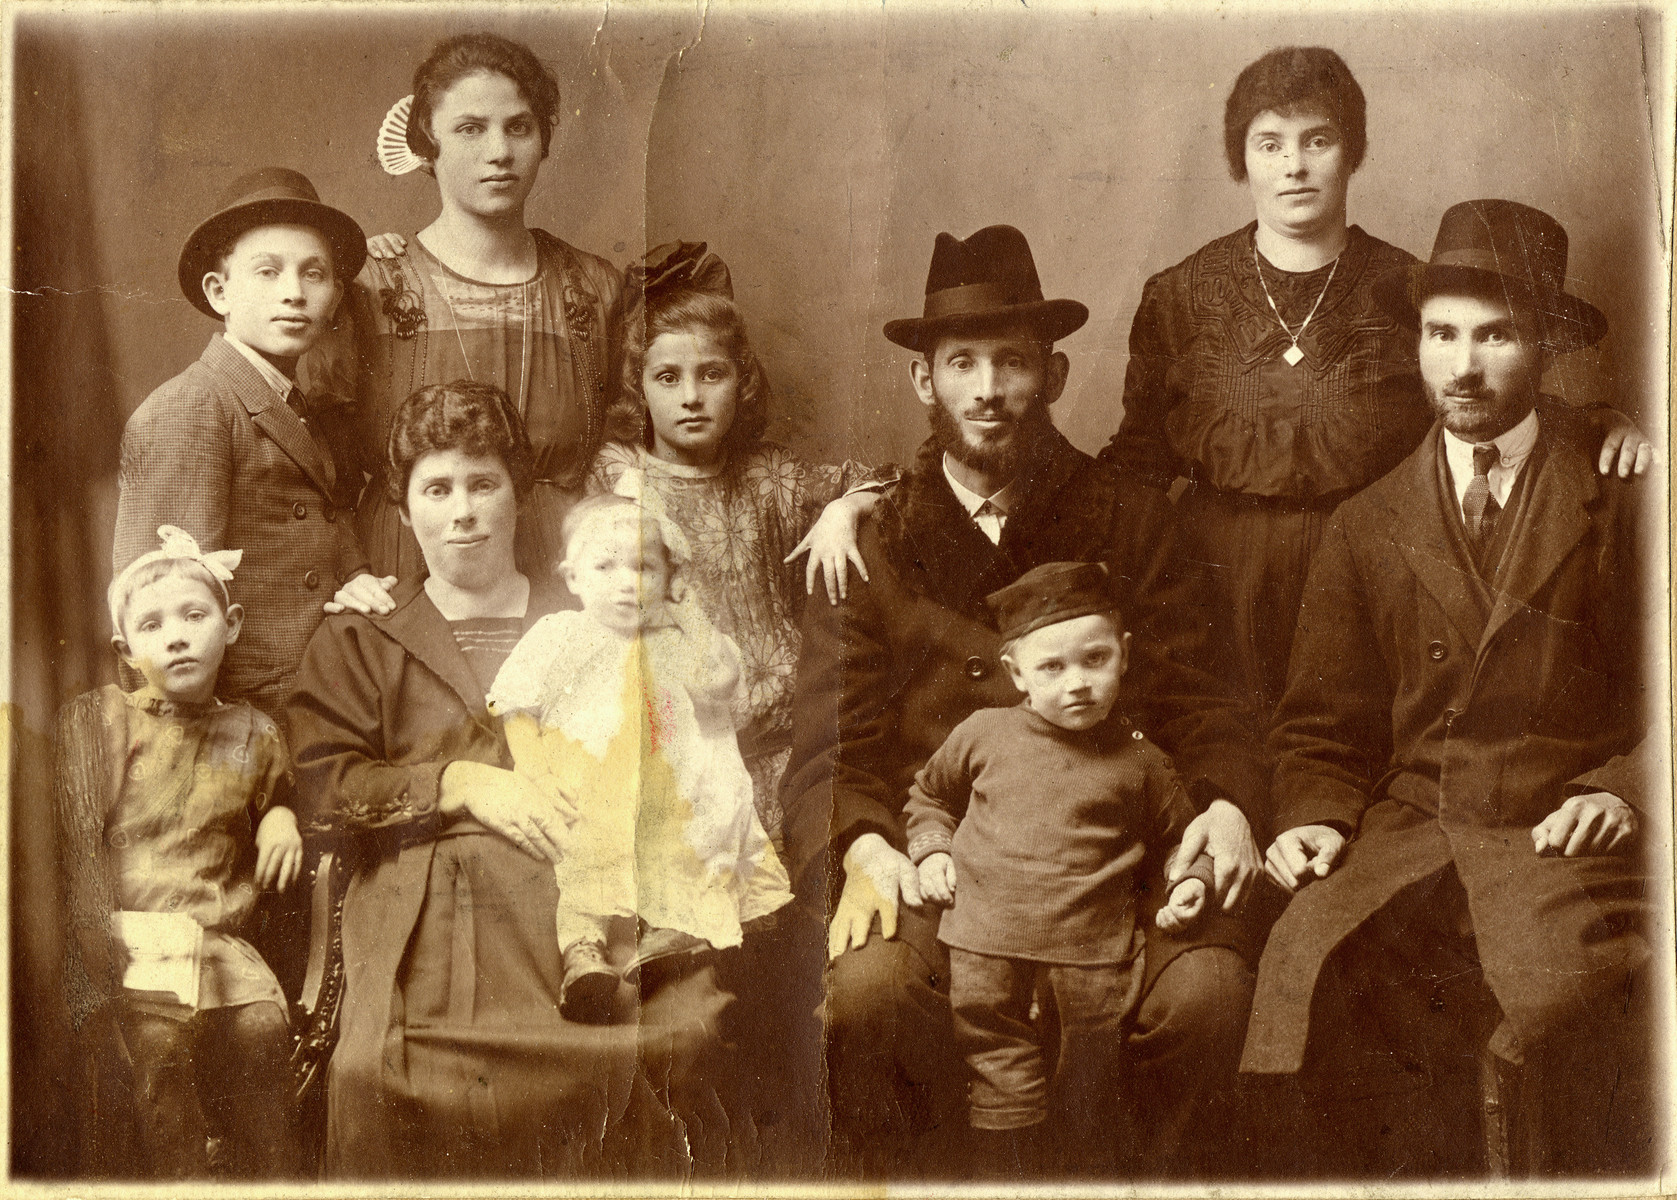 Studio portrait of the Freimowitz family.  Pictured from right to left are Zalman Dub, his wife Raizel Dub (sister of Bertha Freimowitz), Ferenz Freimowitz with Alex, Frida Freimowitz, Bertha Freimowitz holding her daughter Esther, Rachel Freimowitz, Morris Freimowitz and Goldie Freimowitz.